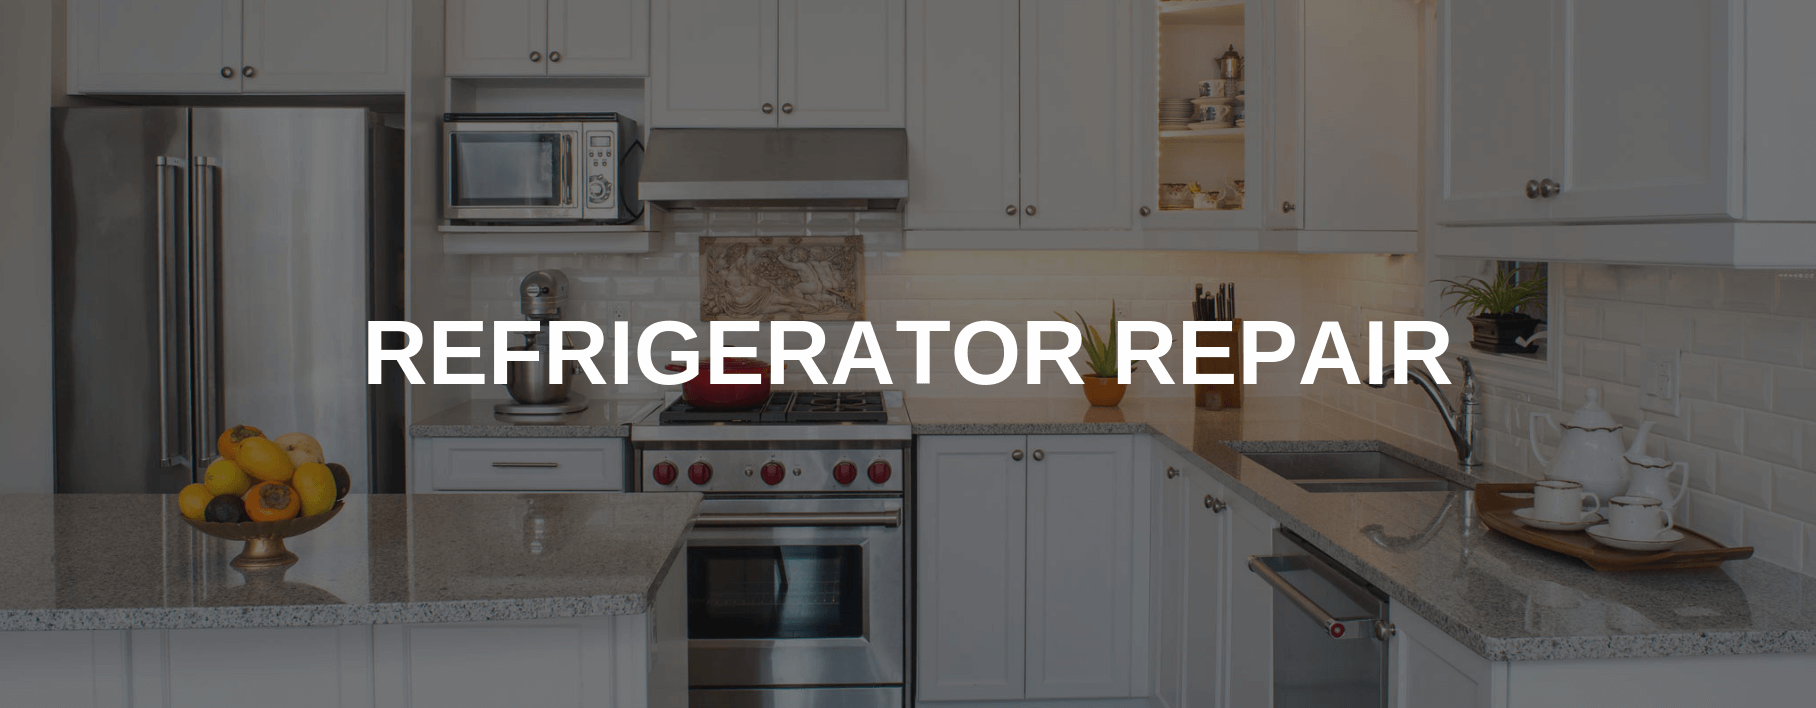 refrigerator repair norwich